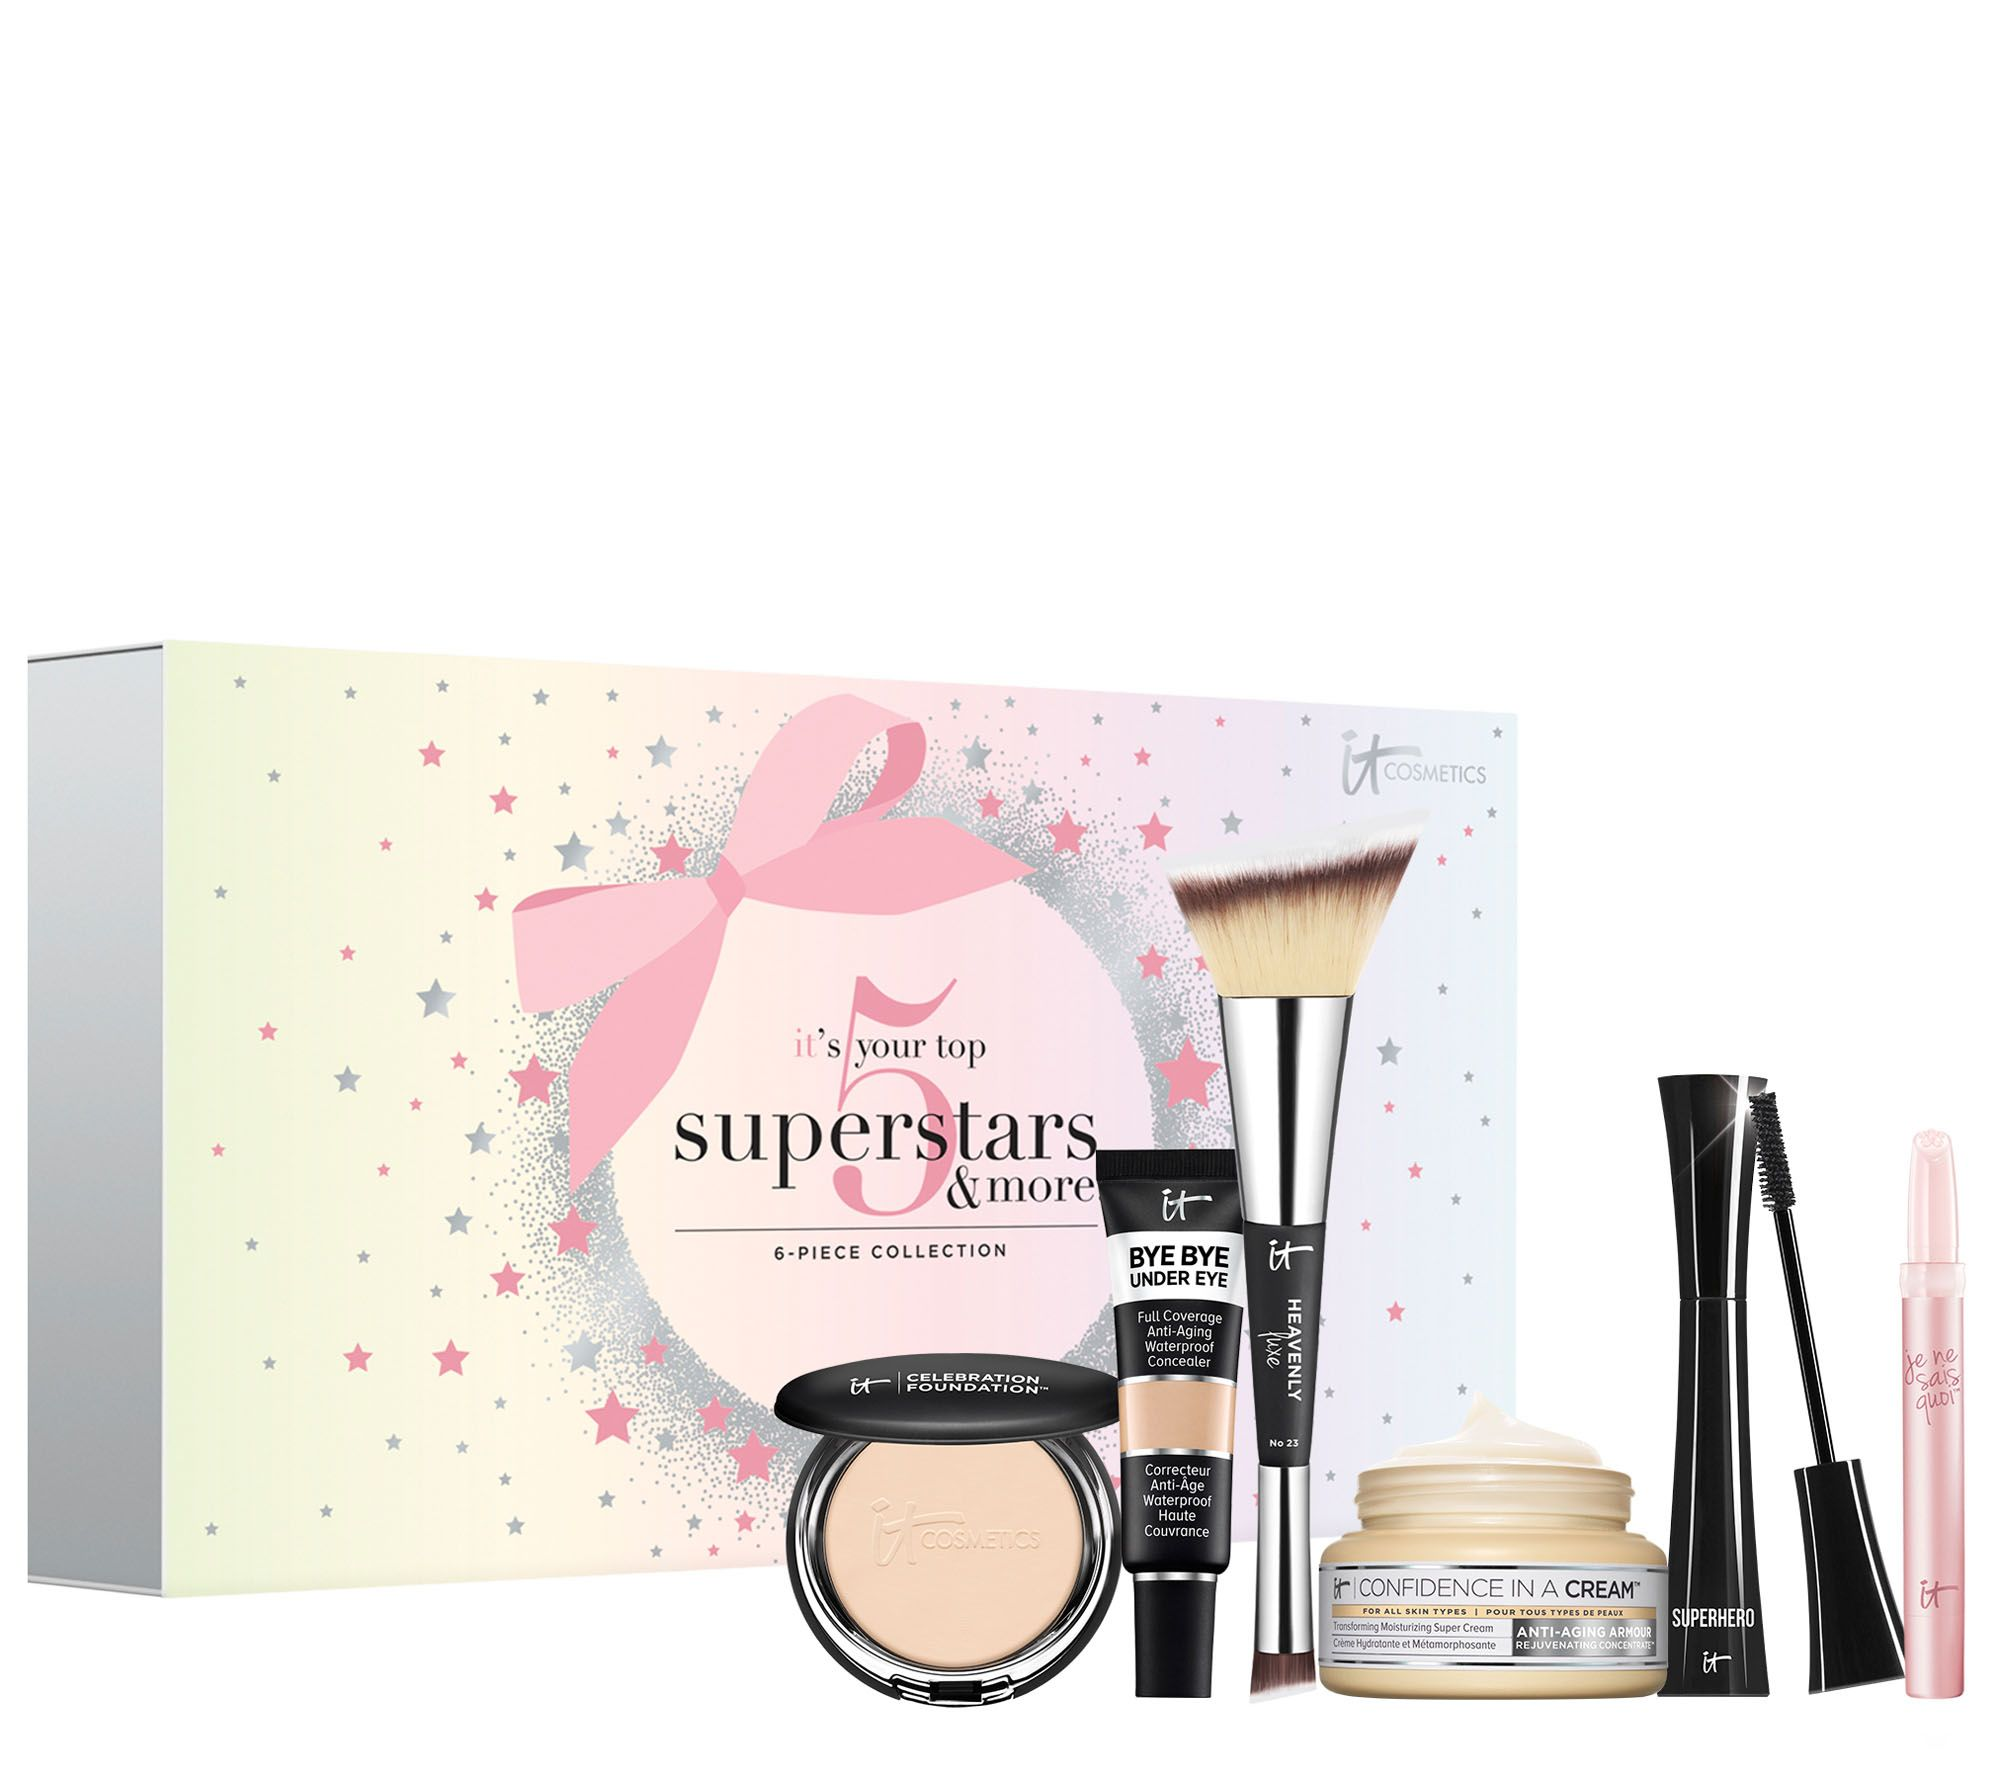 950044e83dc5 IT Cosmetics IT s Your Top 5 Superstars and More! 6-Piece Holiday Set -  Page 1 — QVC.com